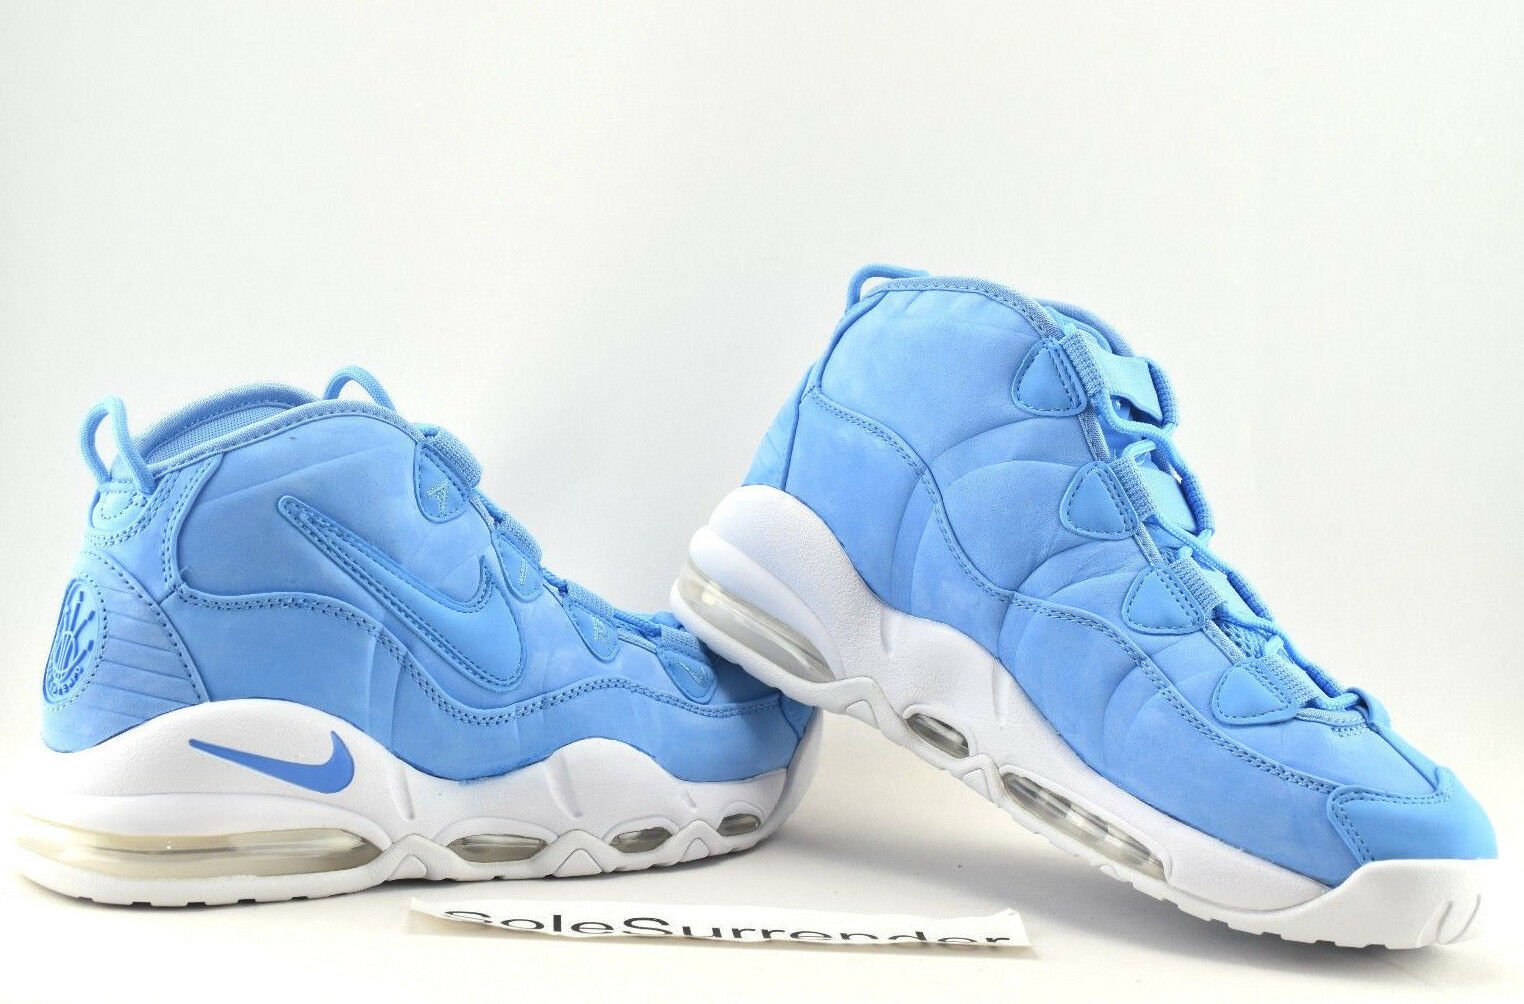 Nike Air Max Uptempo 95 AS QS - CHOOSE SIZE- 922932-400 More Pippen UNC All Star